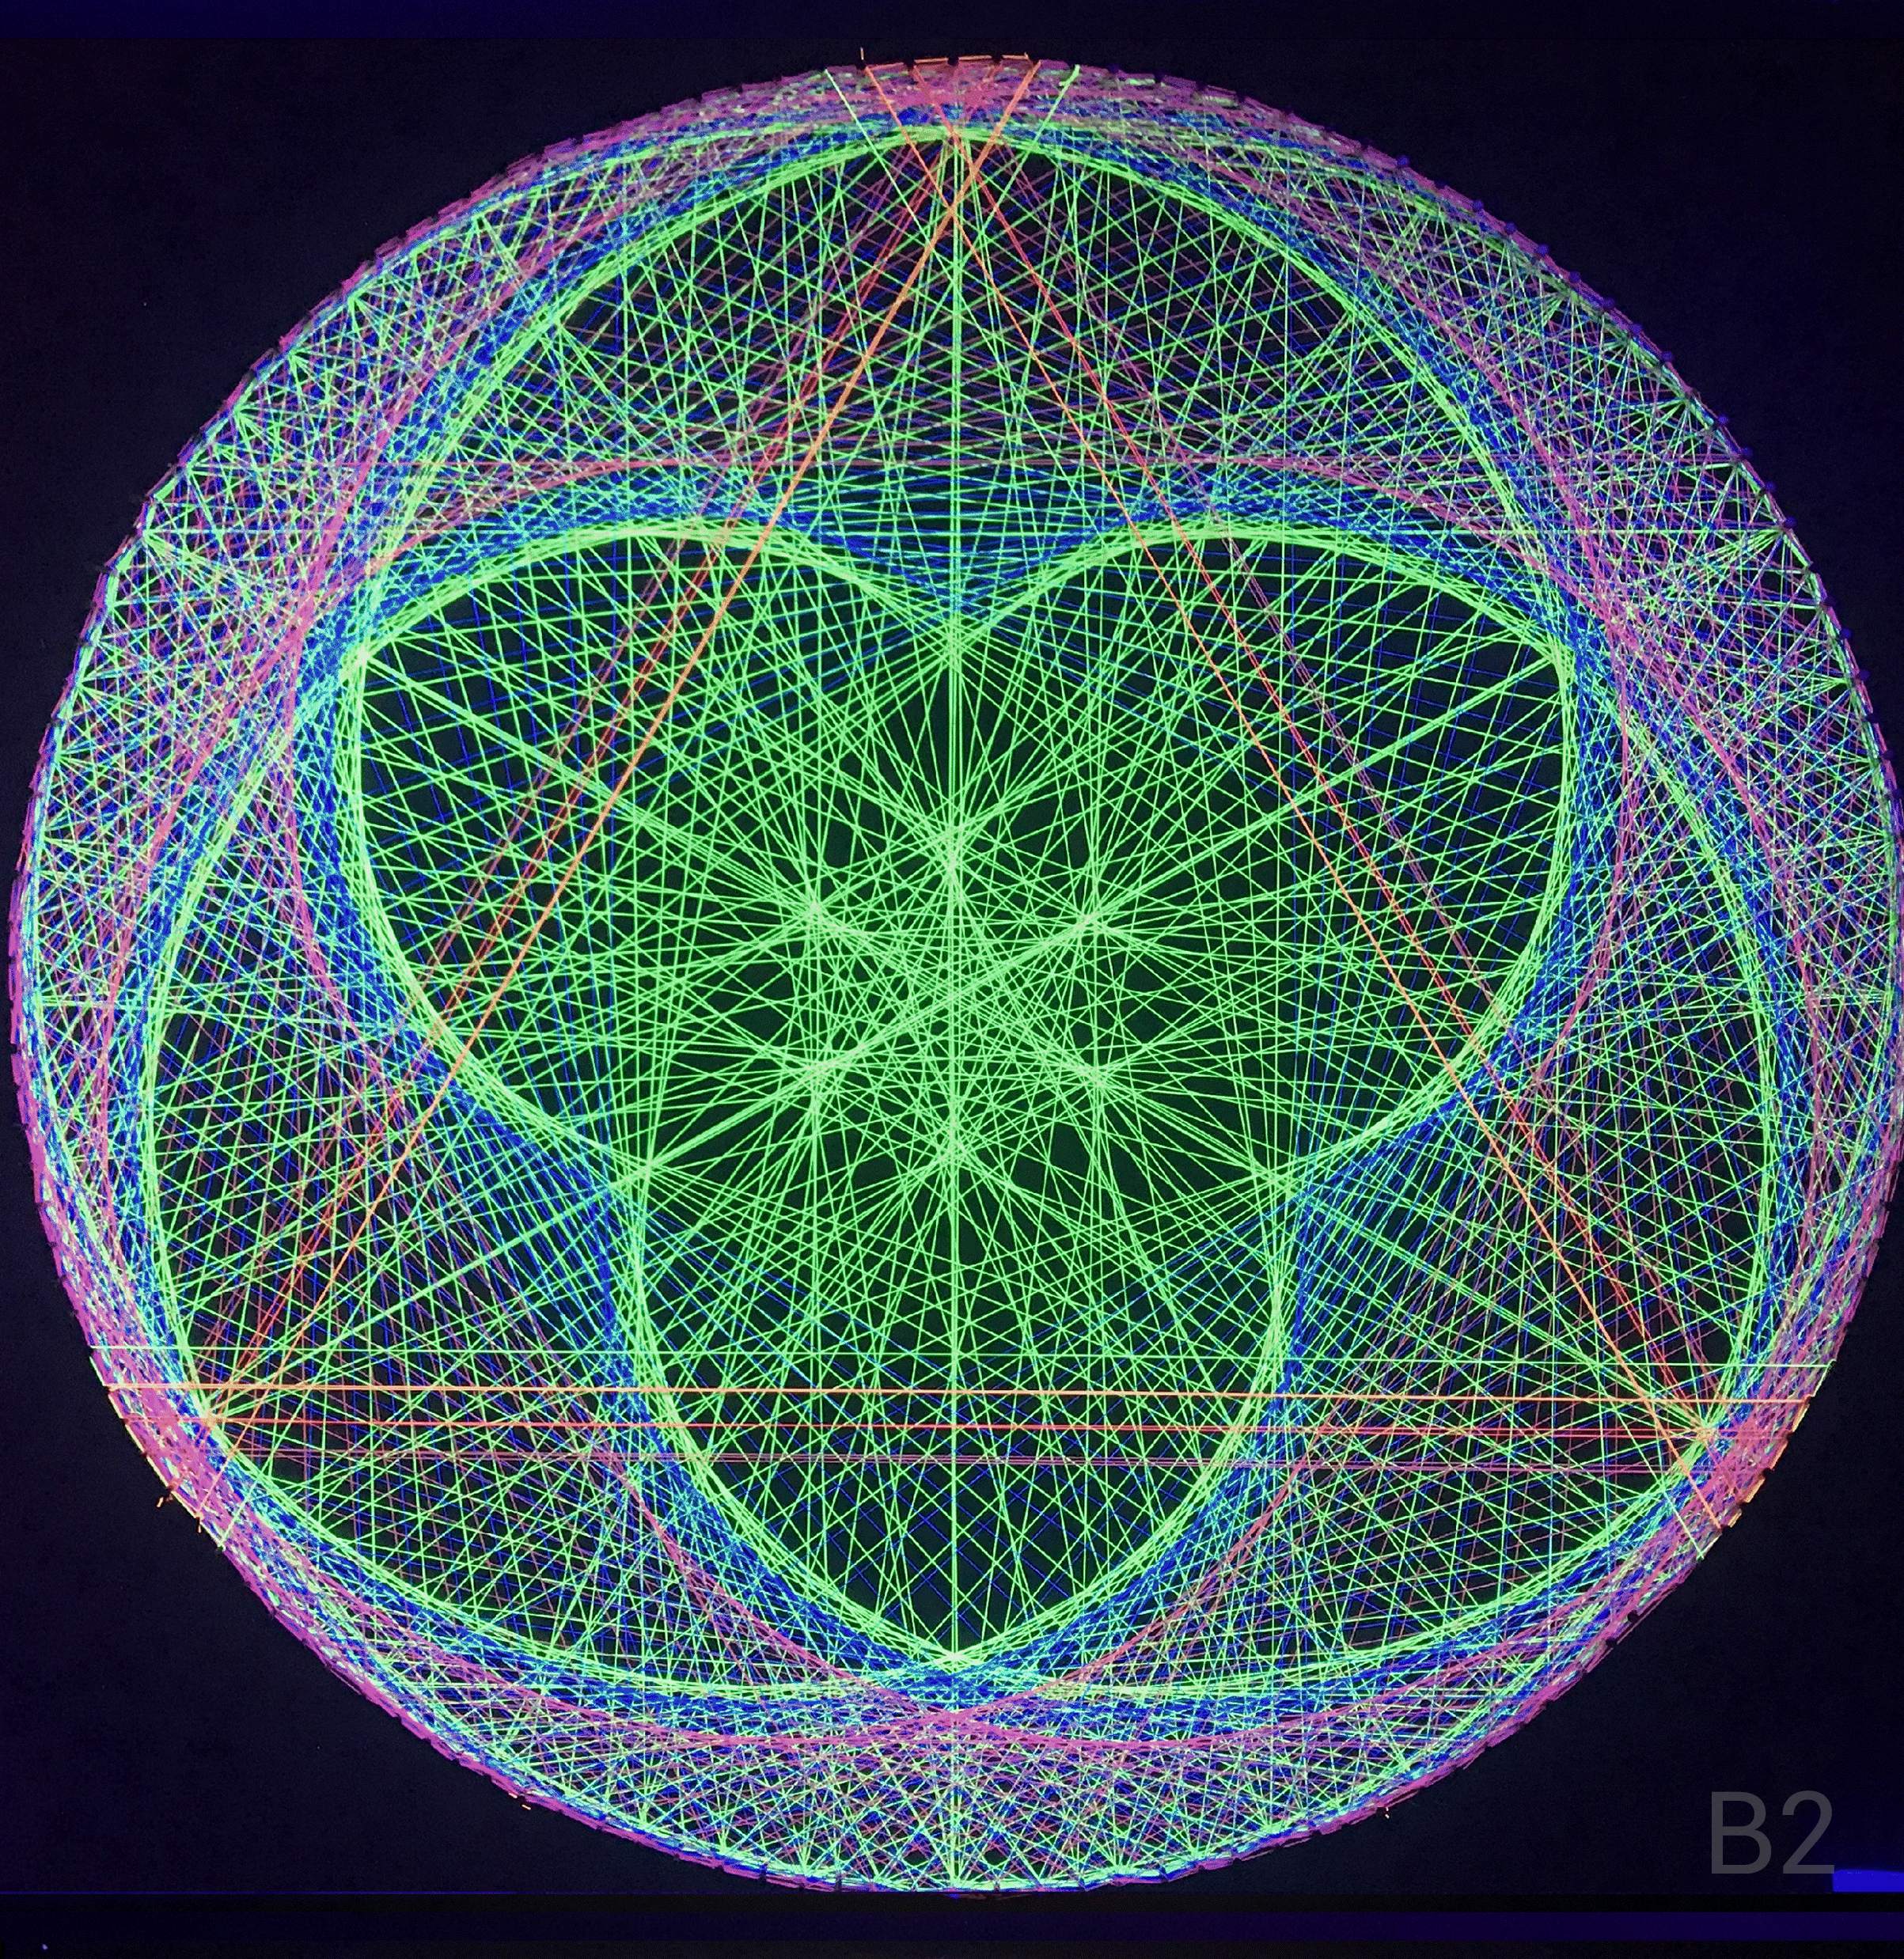 nova-scopes-string-art-b2-cubed.png